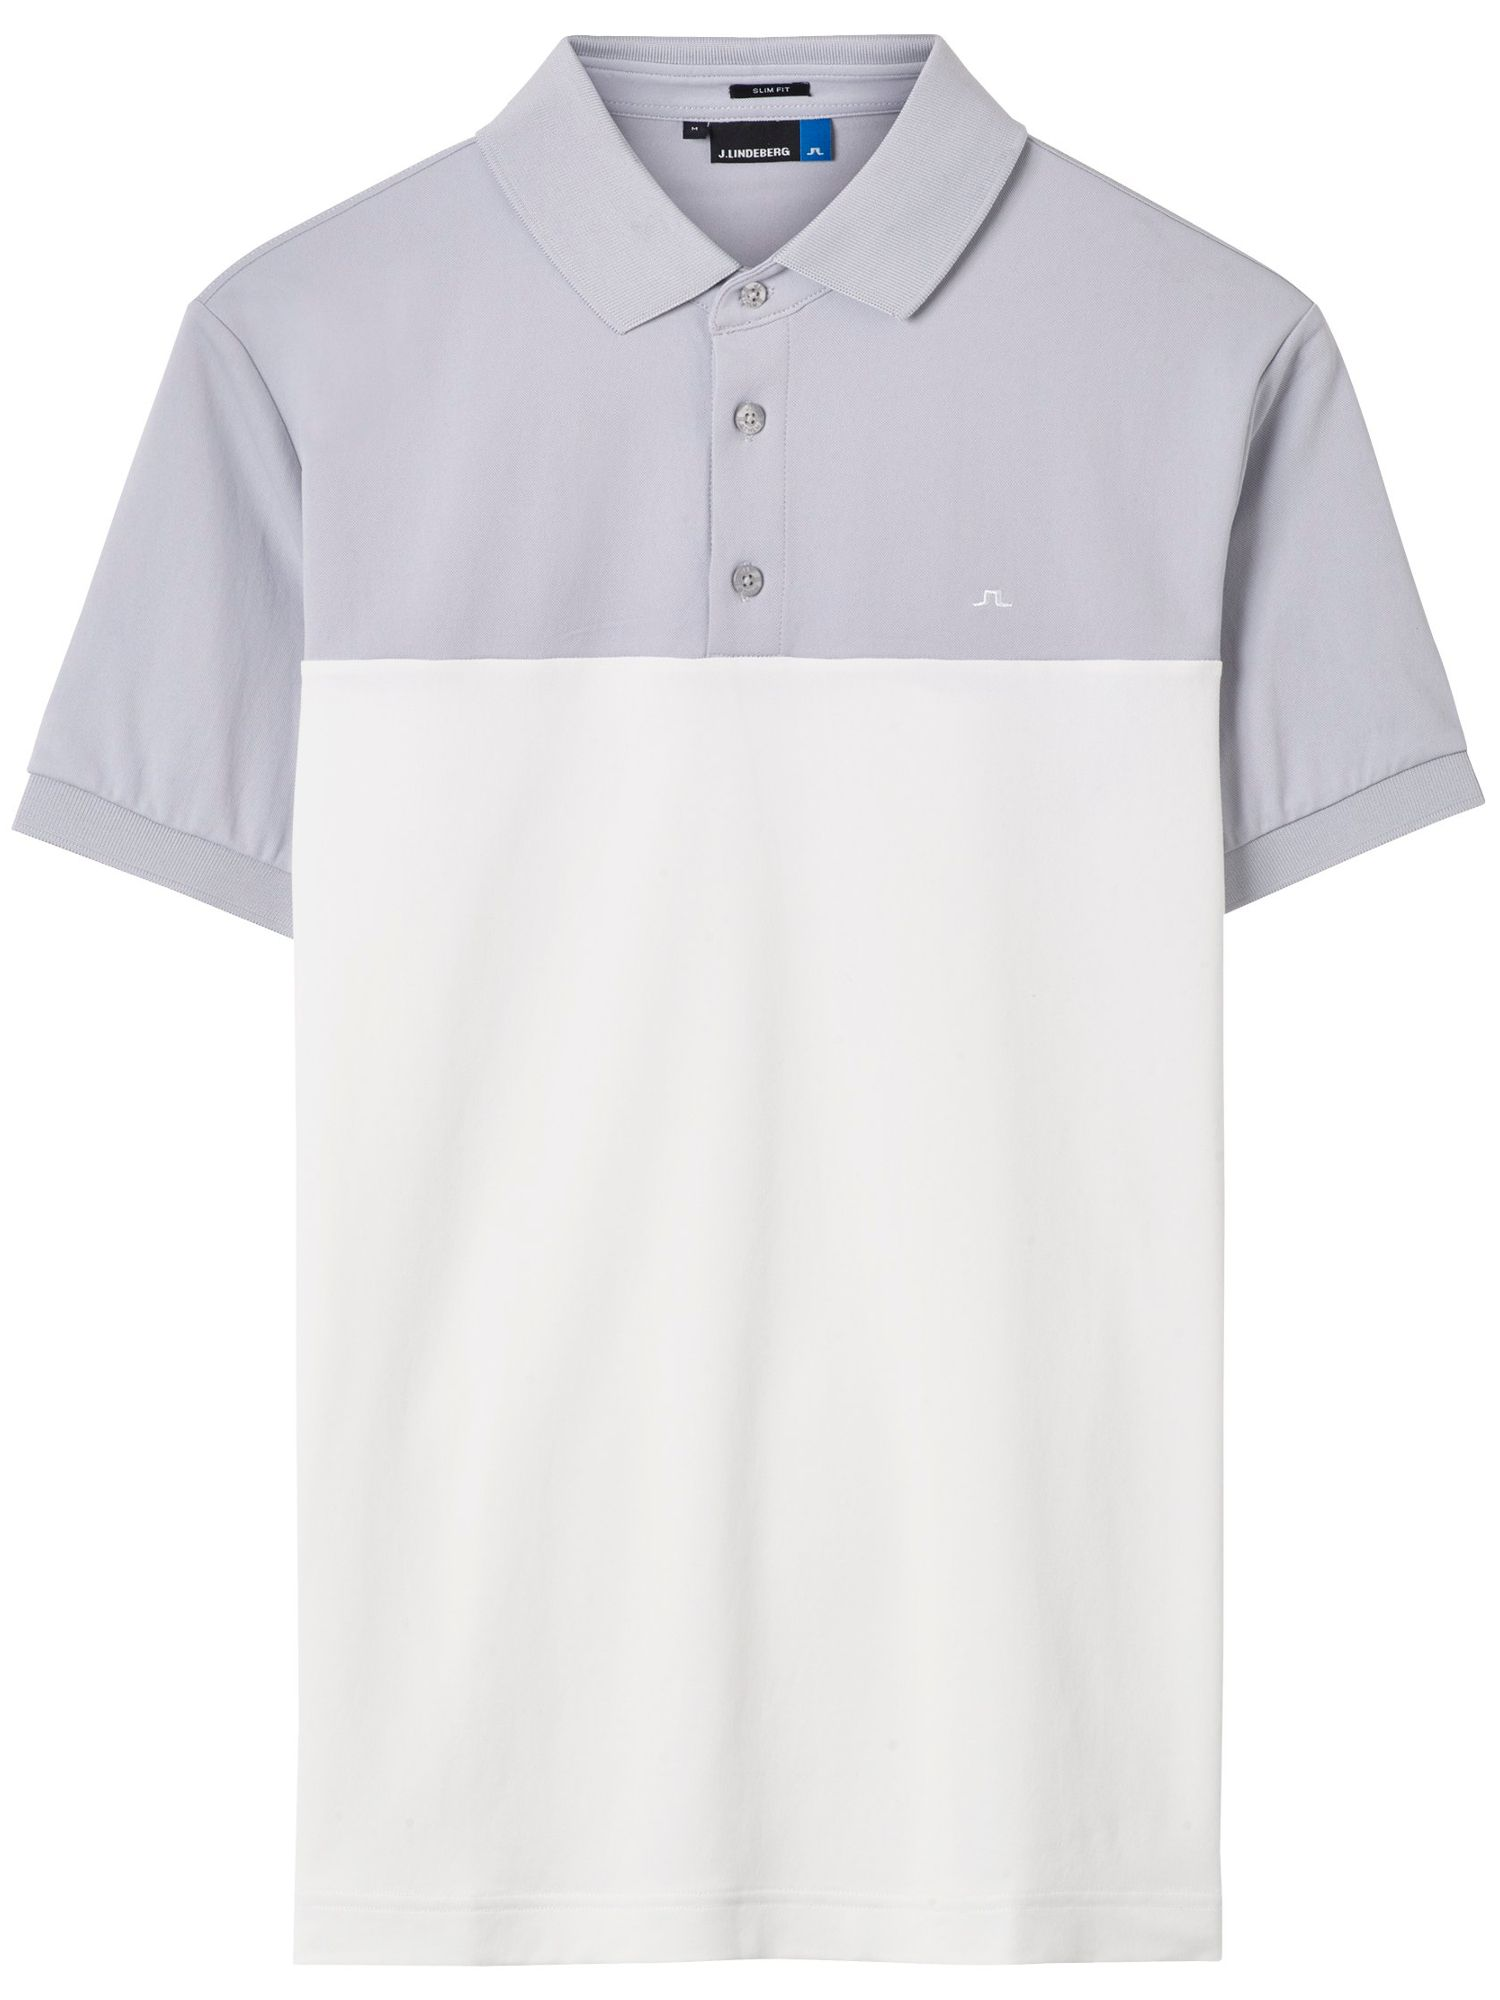 Men's J Lindeberg Golf Johan TX Slim Fit Polo, Grey